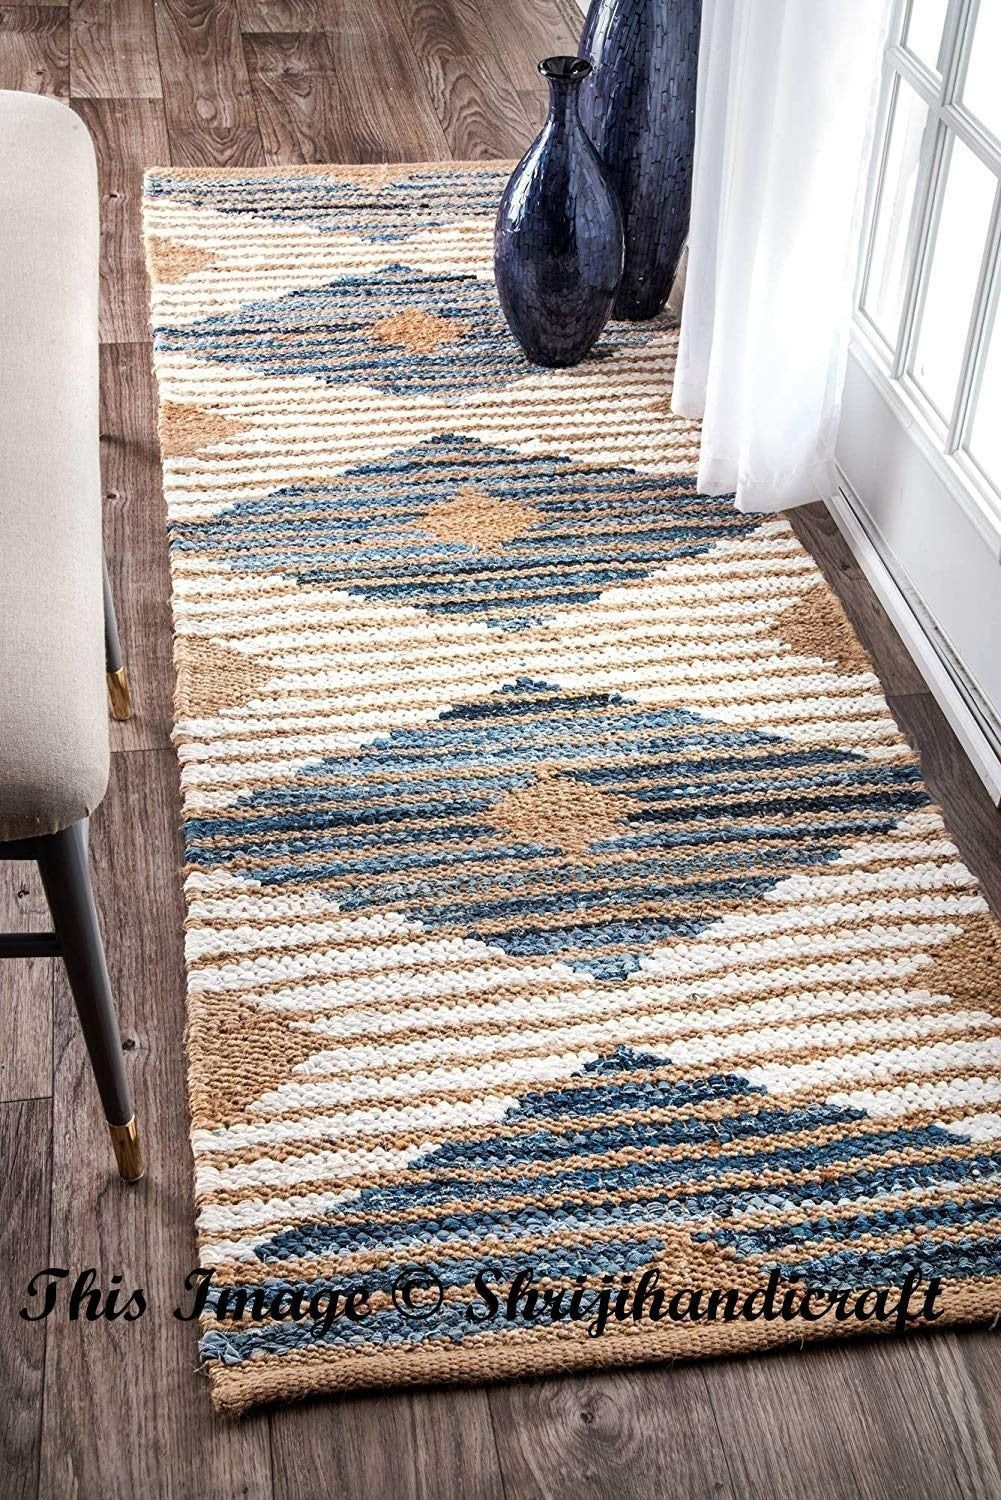 Bohemian Decor Indian Braided Runner Rug Home Decor Runner Rug Rag Rug Jute Rug Runner Meditation Mat Rug Colorful Area Rug Braided Area Rugs Floor Rugs